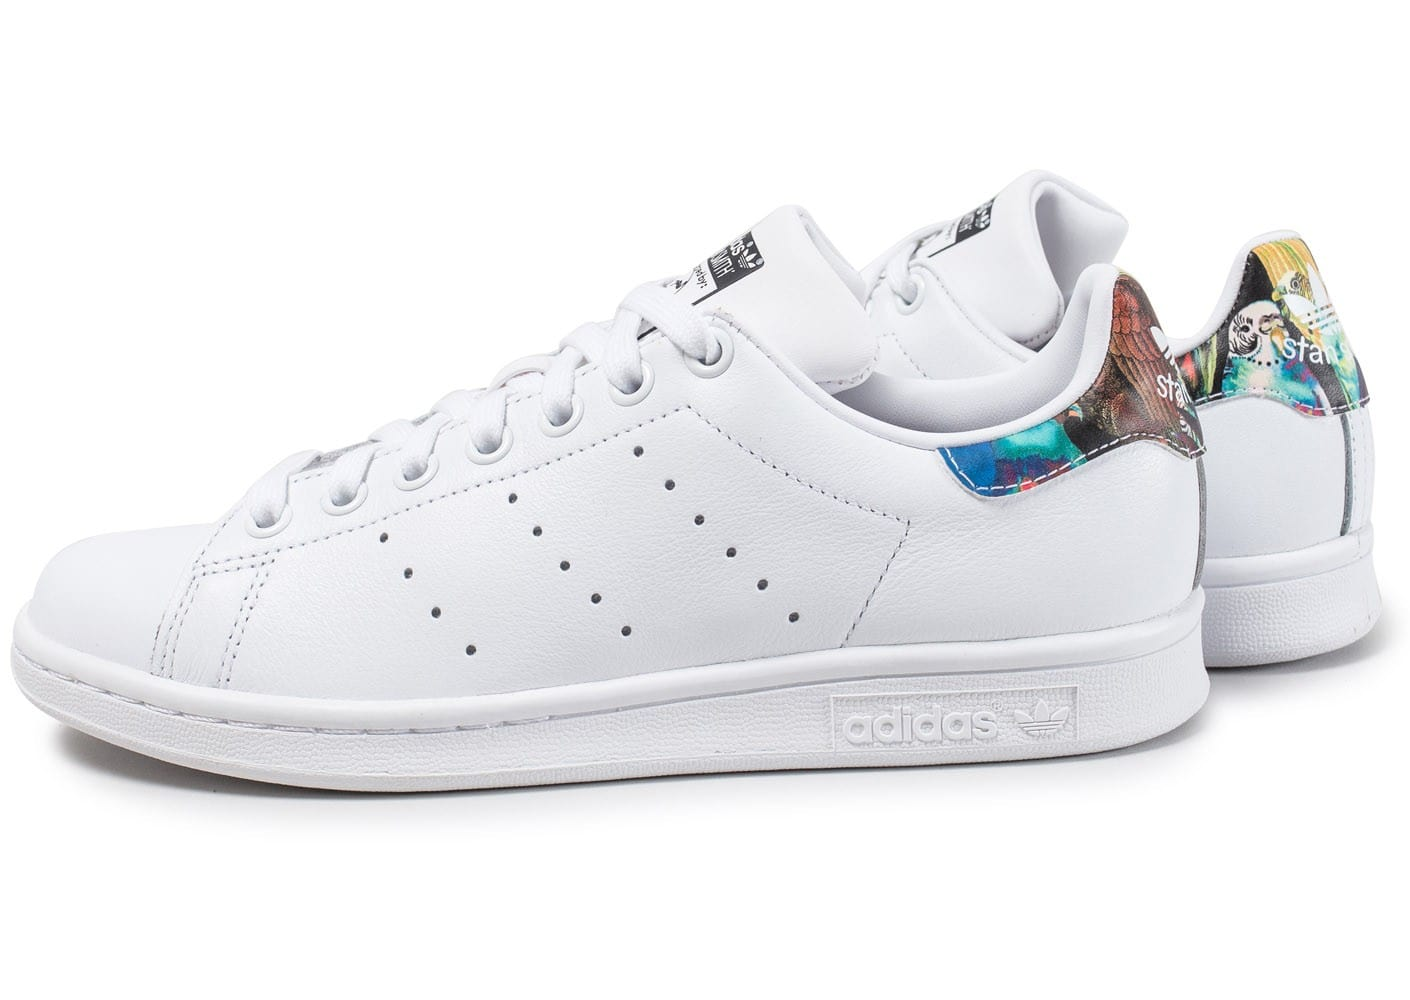 adidas stan smith entretien